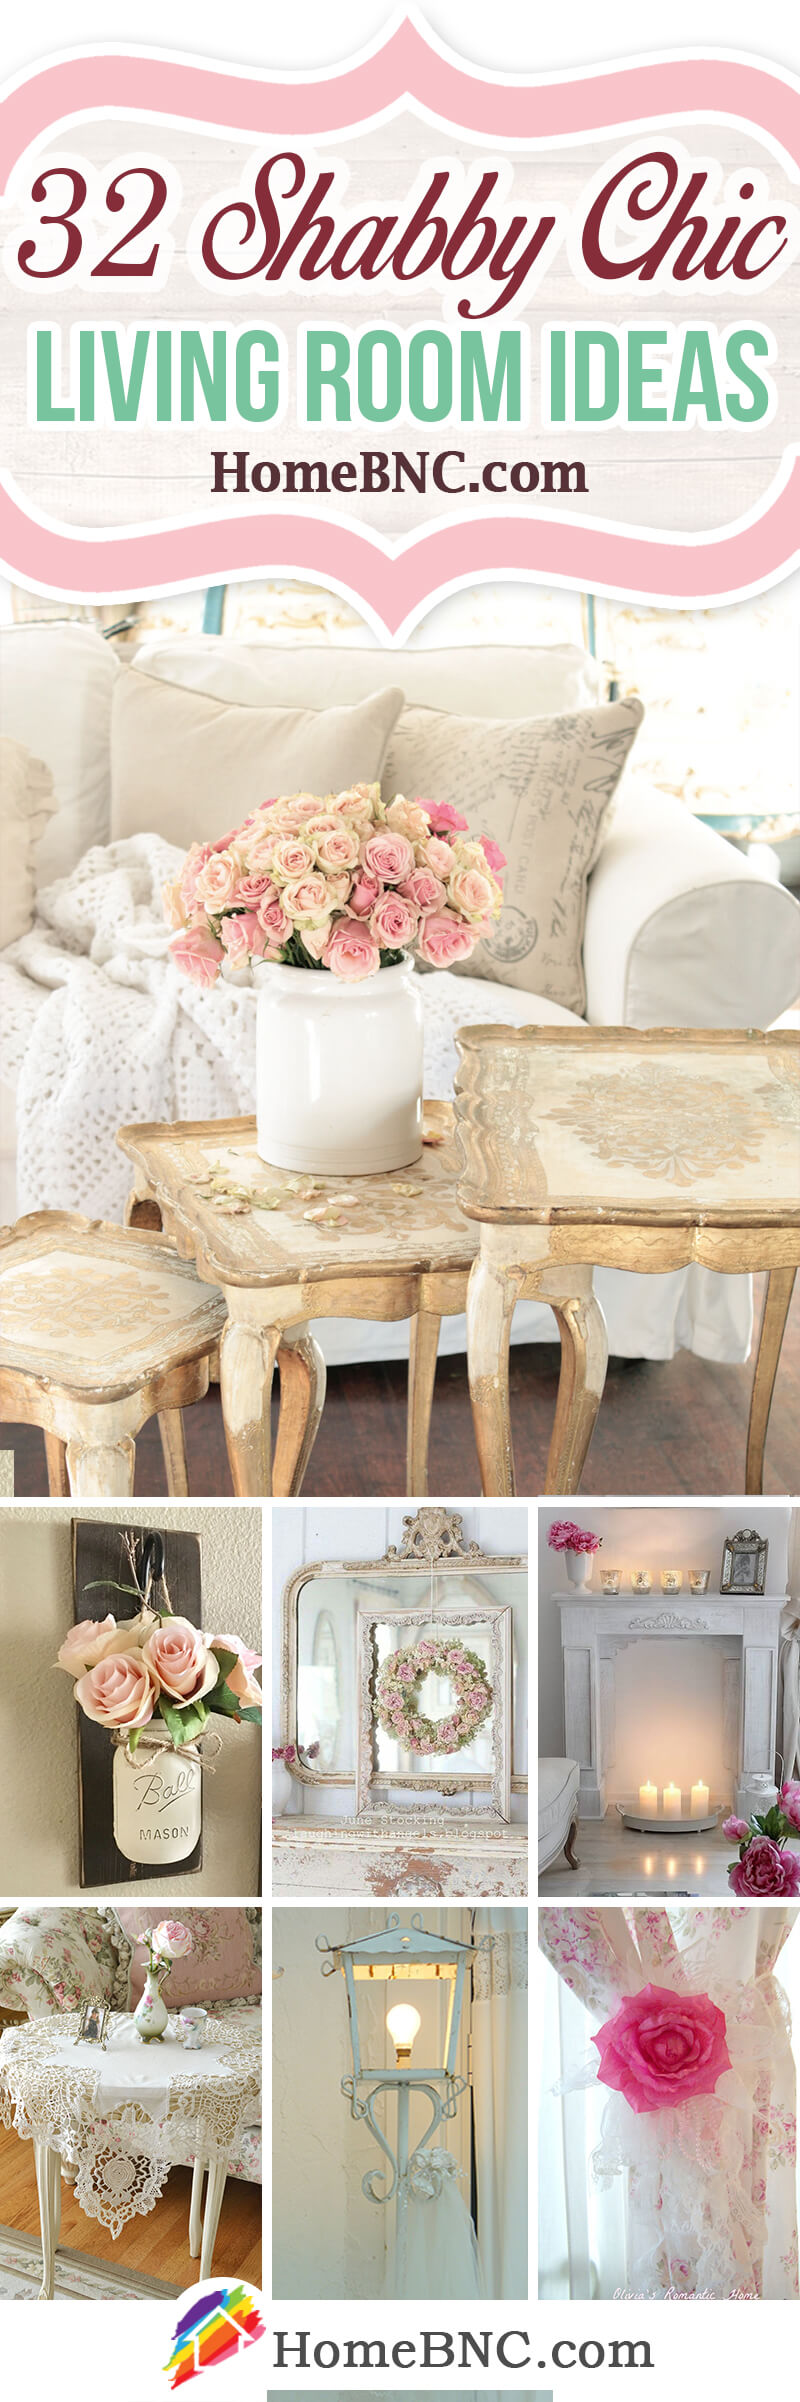 Shabby Chic Living Room Decor Ideas